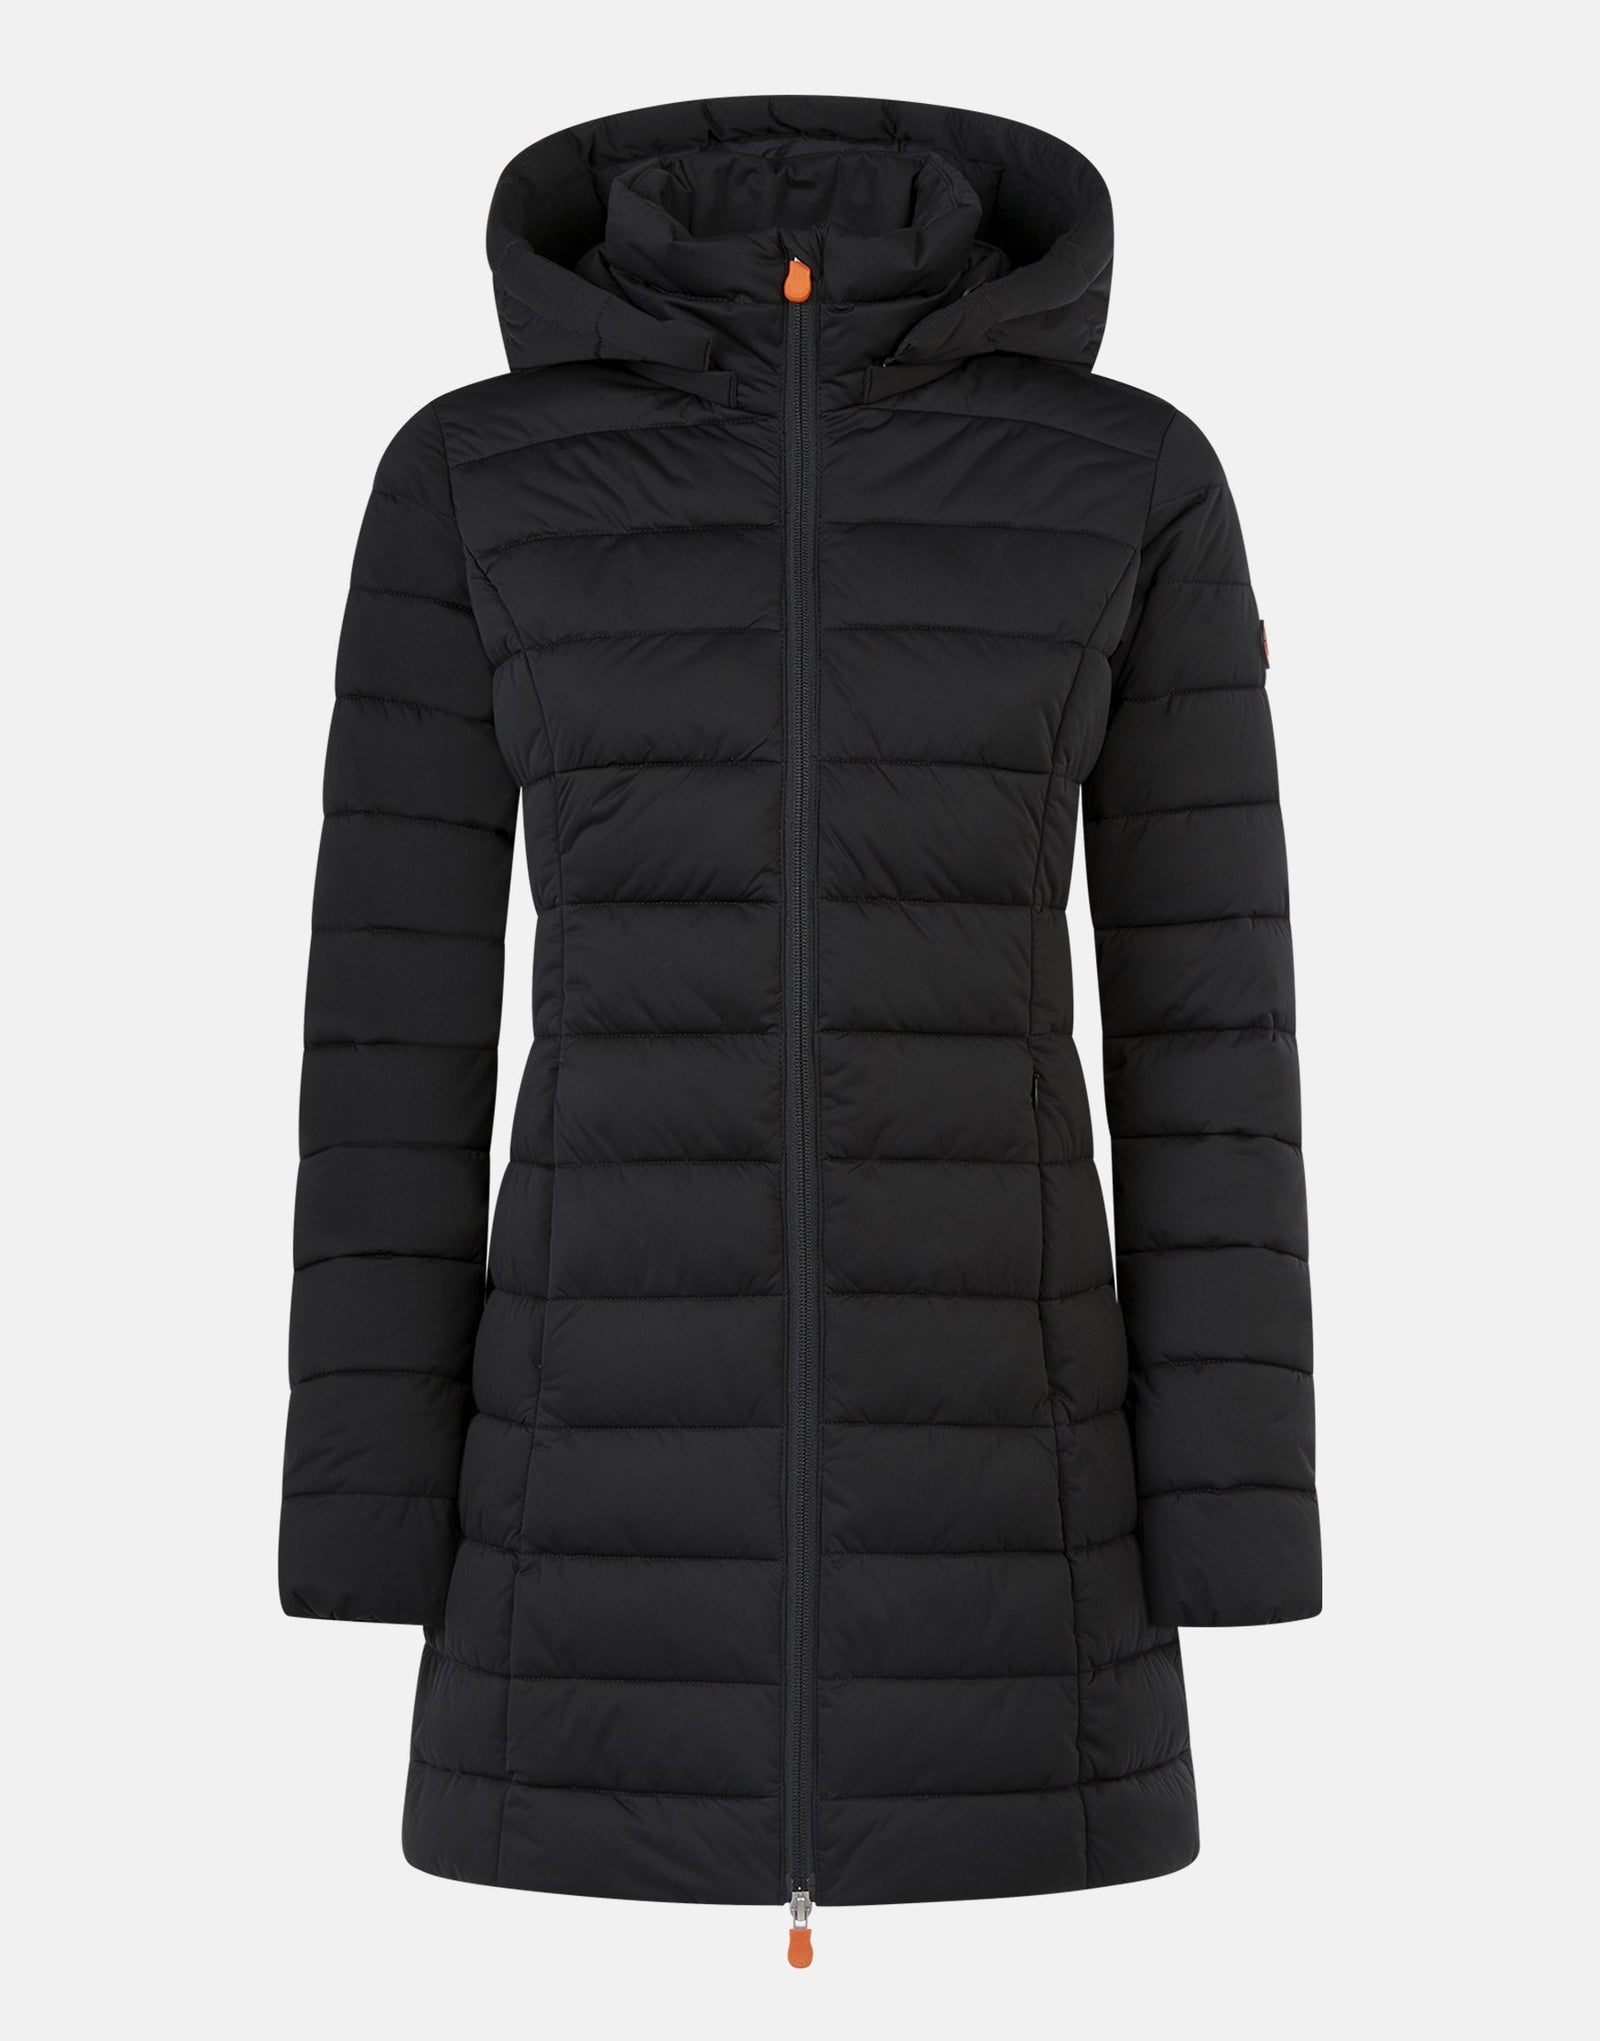 SAVE THE DUCK WOMEN'S SOLD STRETCH COAT WITH DETACHABLE HOOD - Luxe EQ